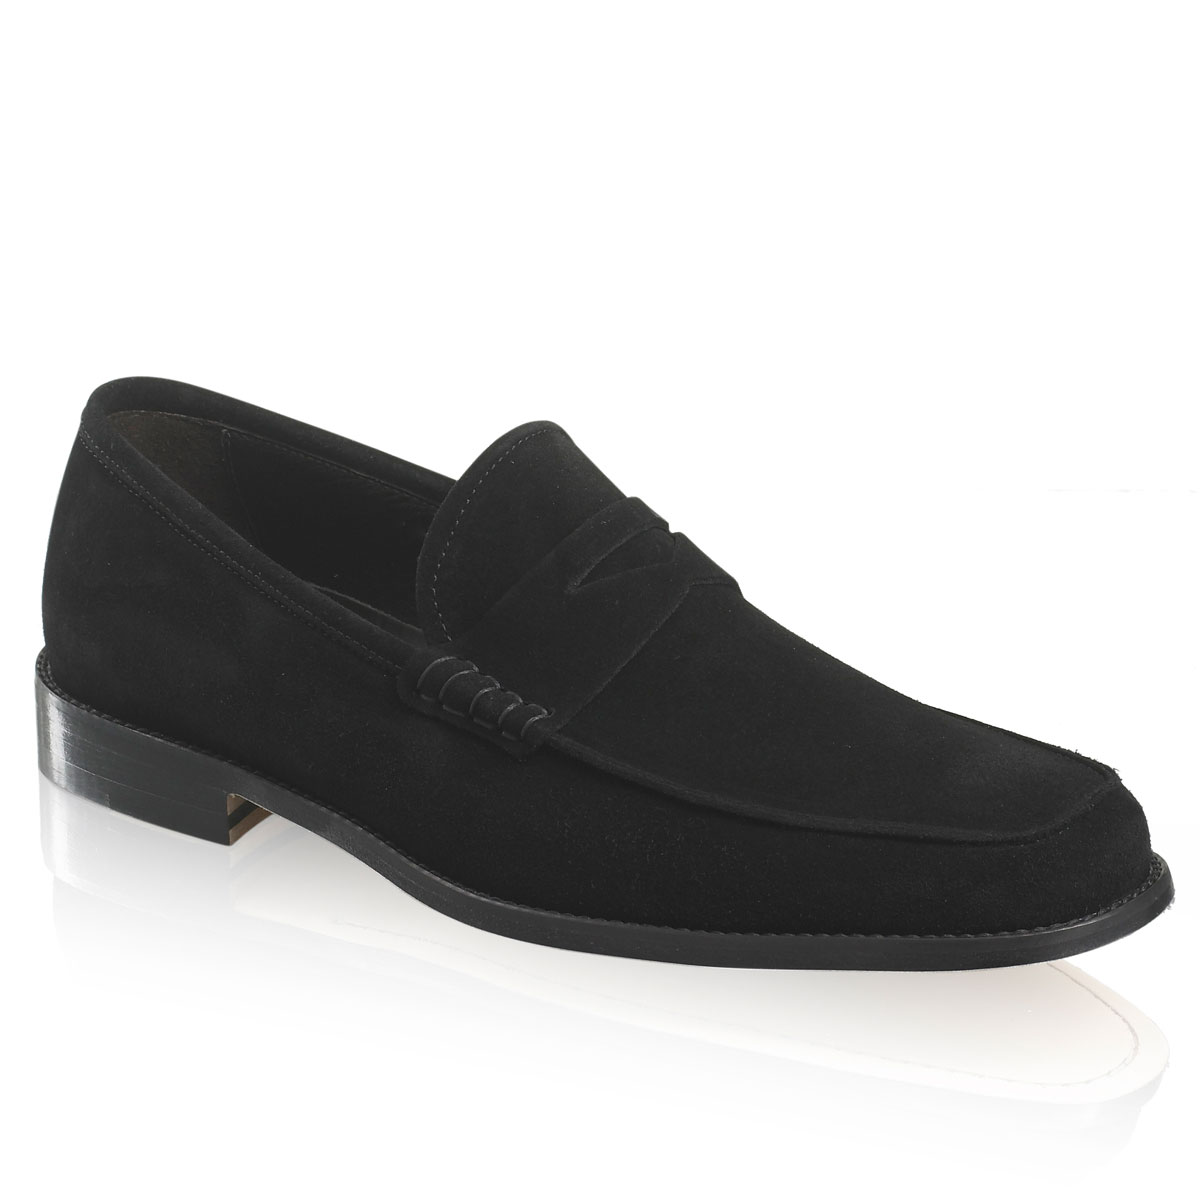 Russell and Bromley MENTOR Slip-On Loafer